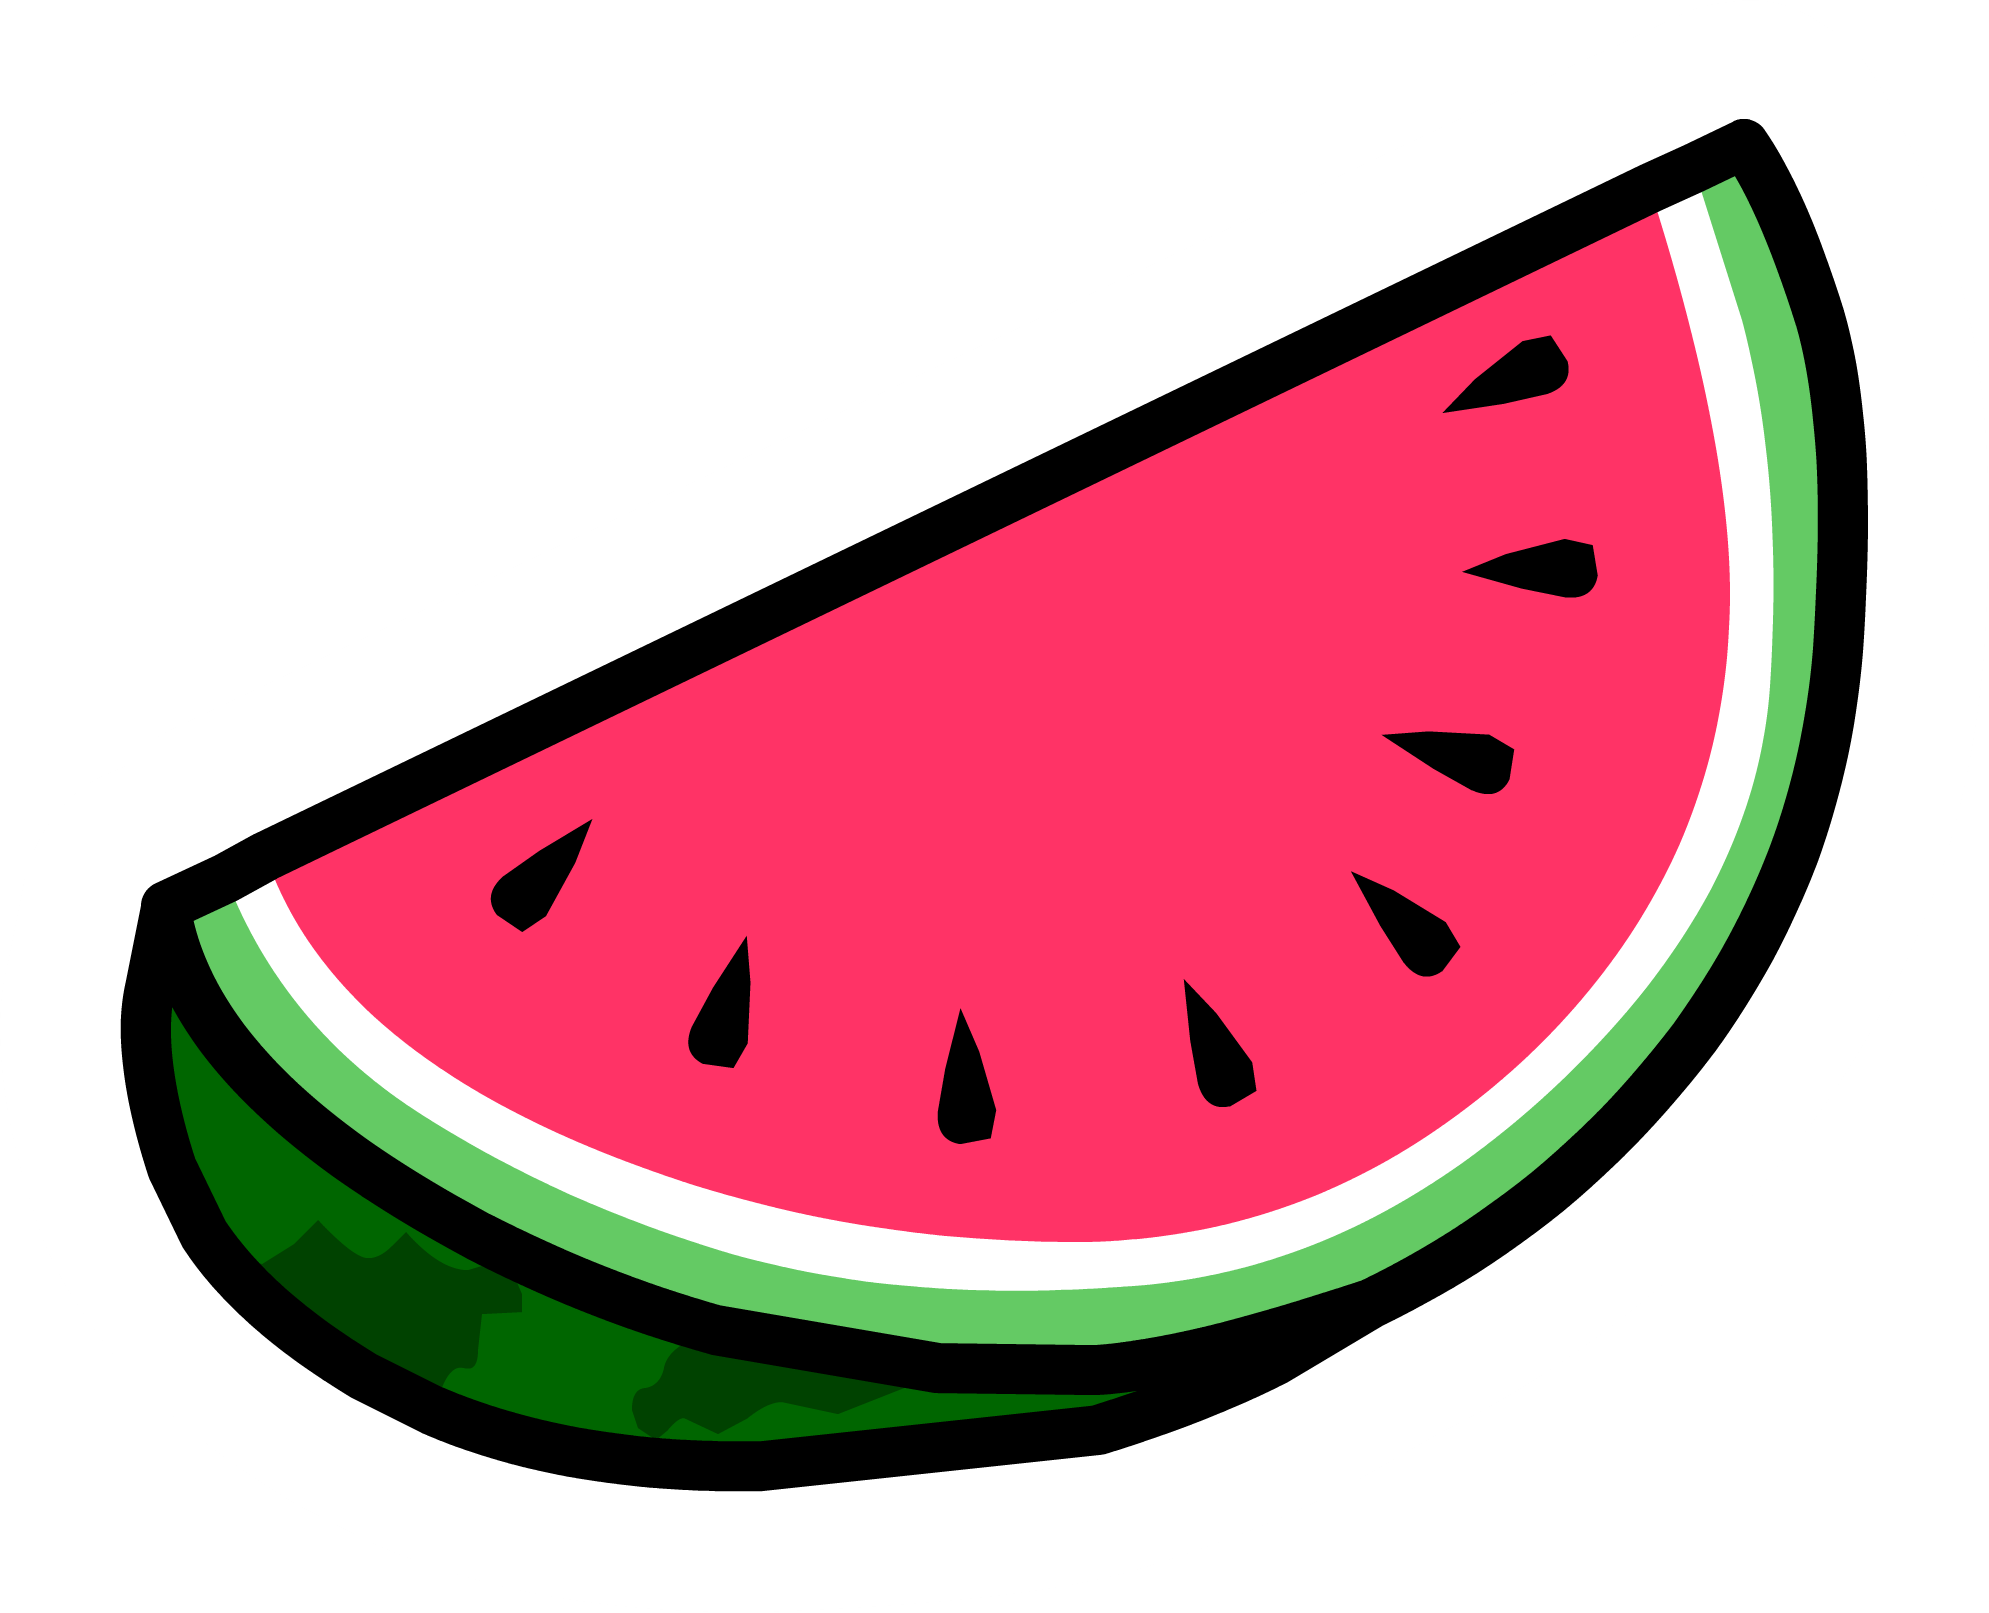 Watermelon clipart emoji.  collection of transparent